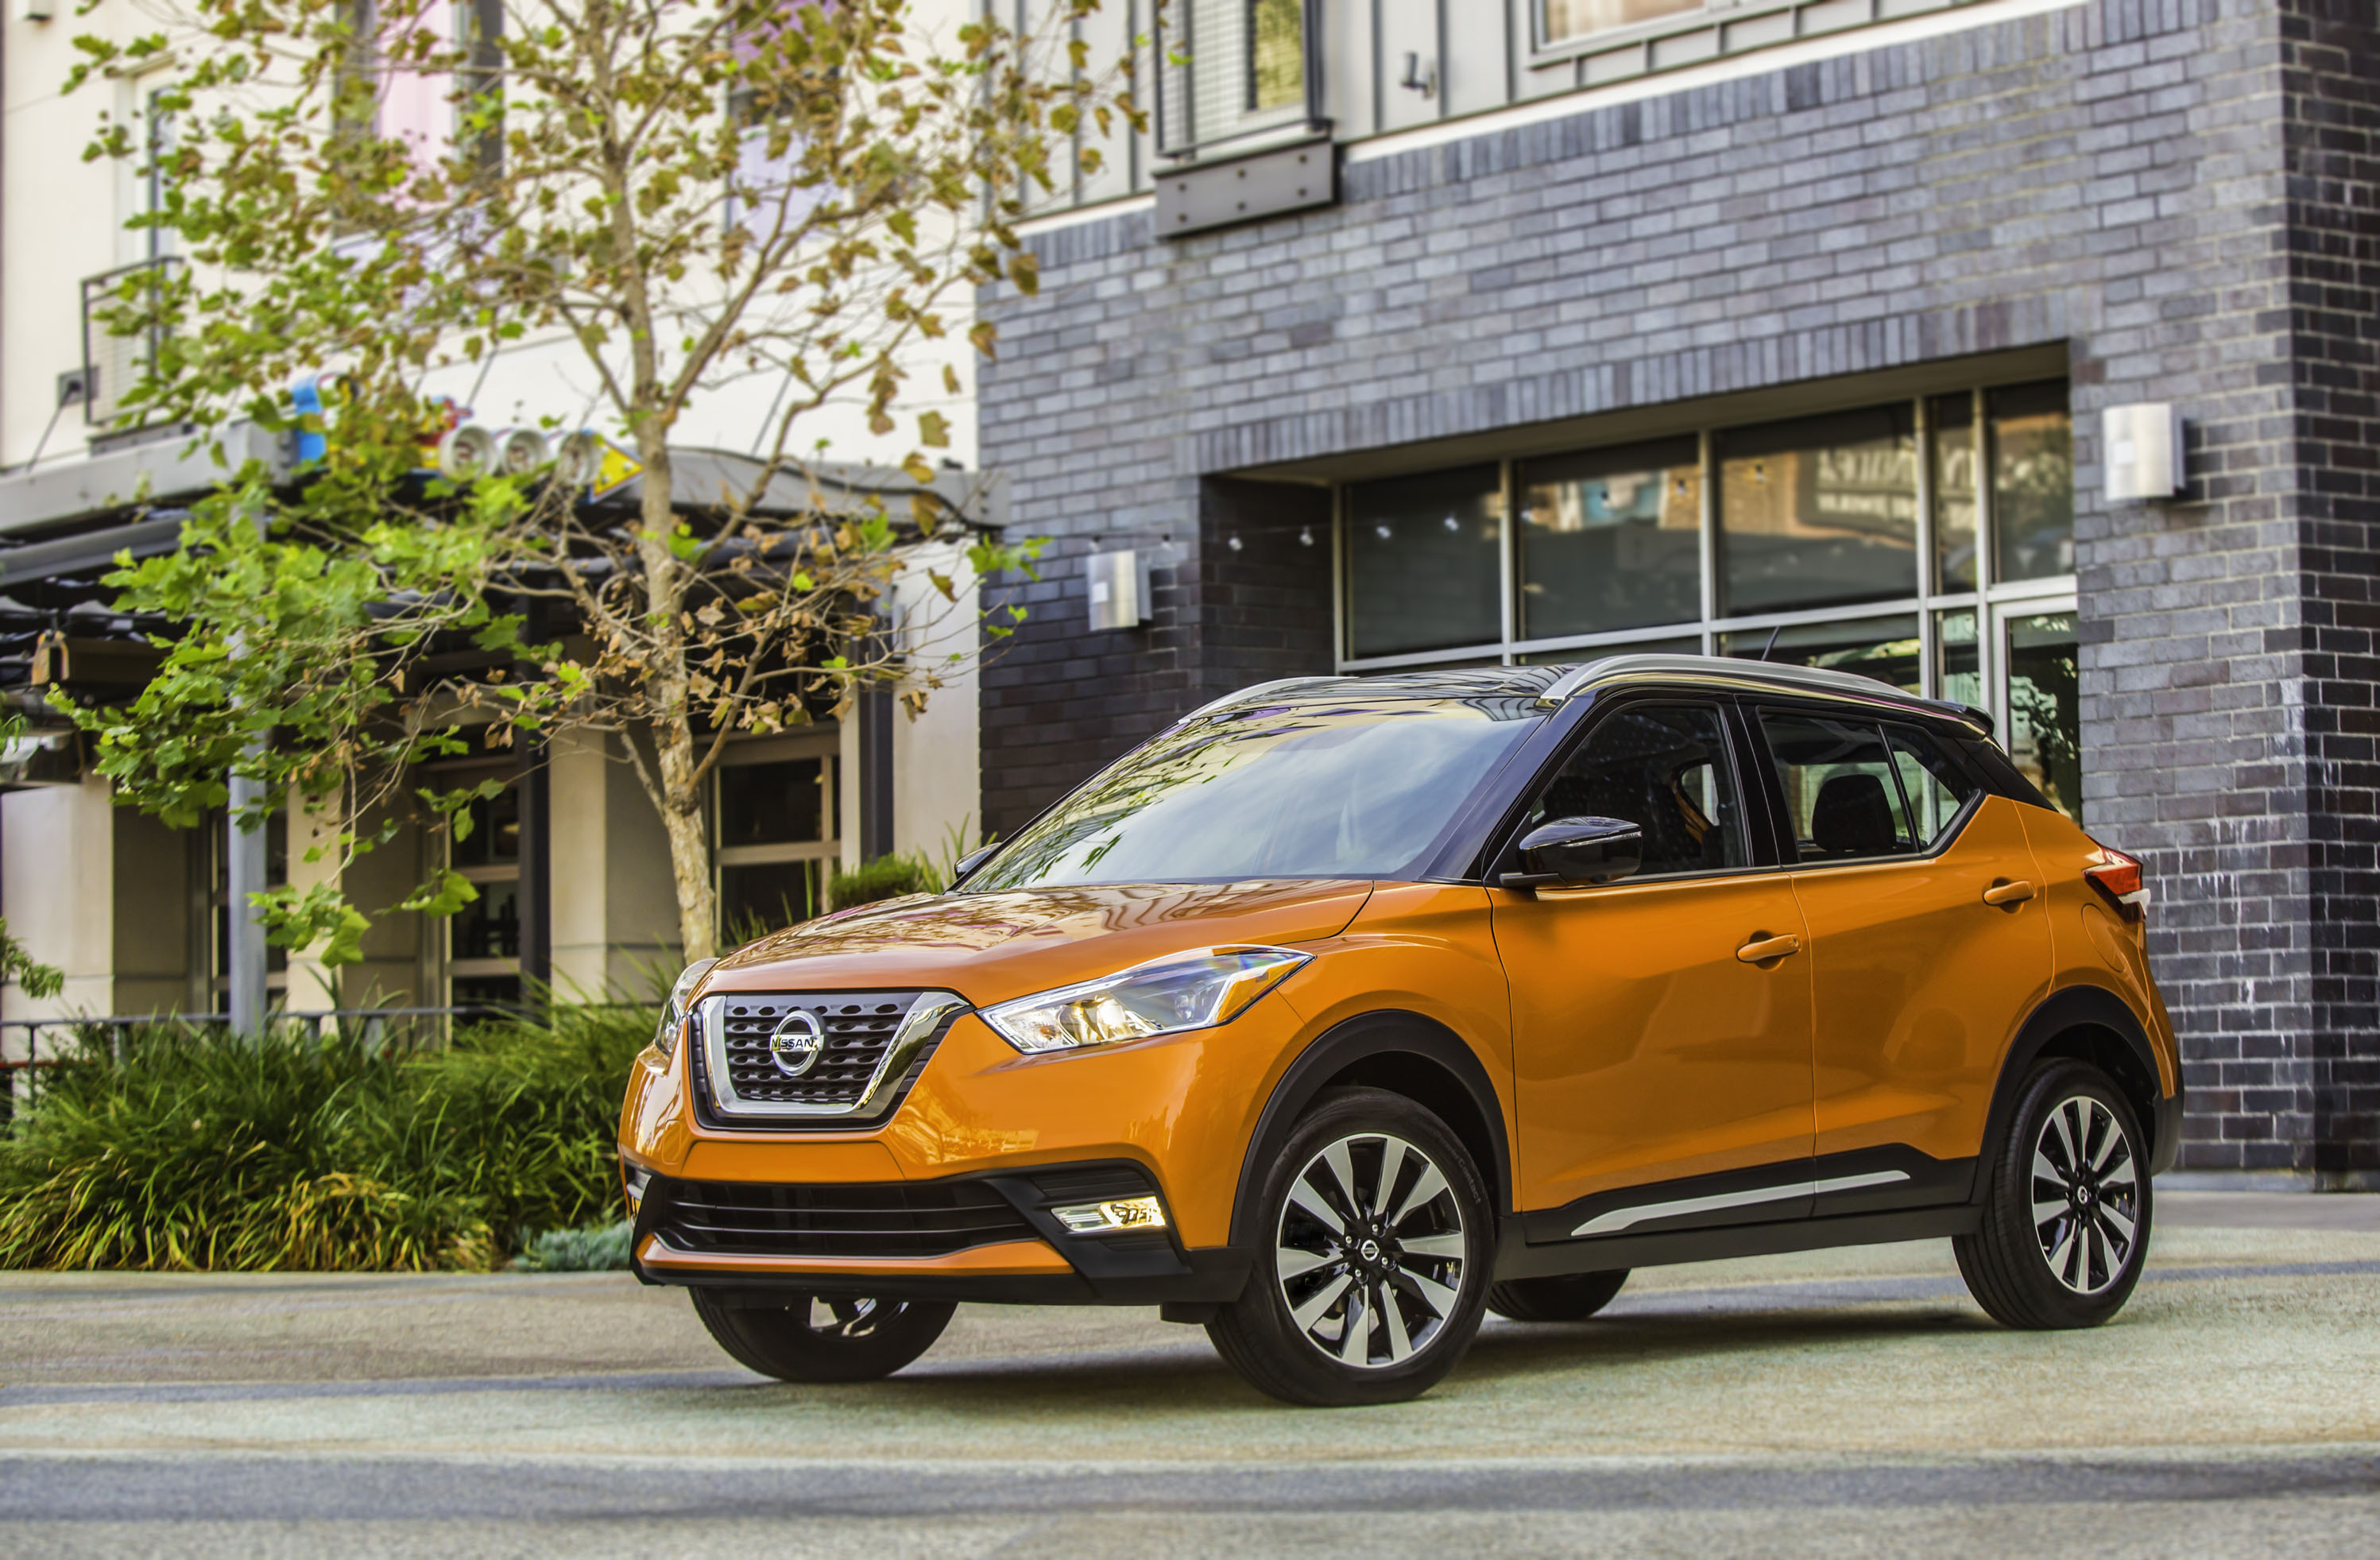 The newest entry in the fast-growing affordable compact crossover market, the bold new 2018 Nissan Kicks becomes the sixth member of the Nissan crossover and SUV line-up – which has experienced record sales in recent years.